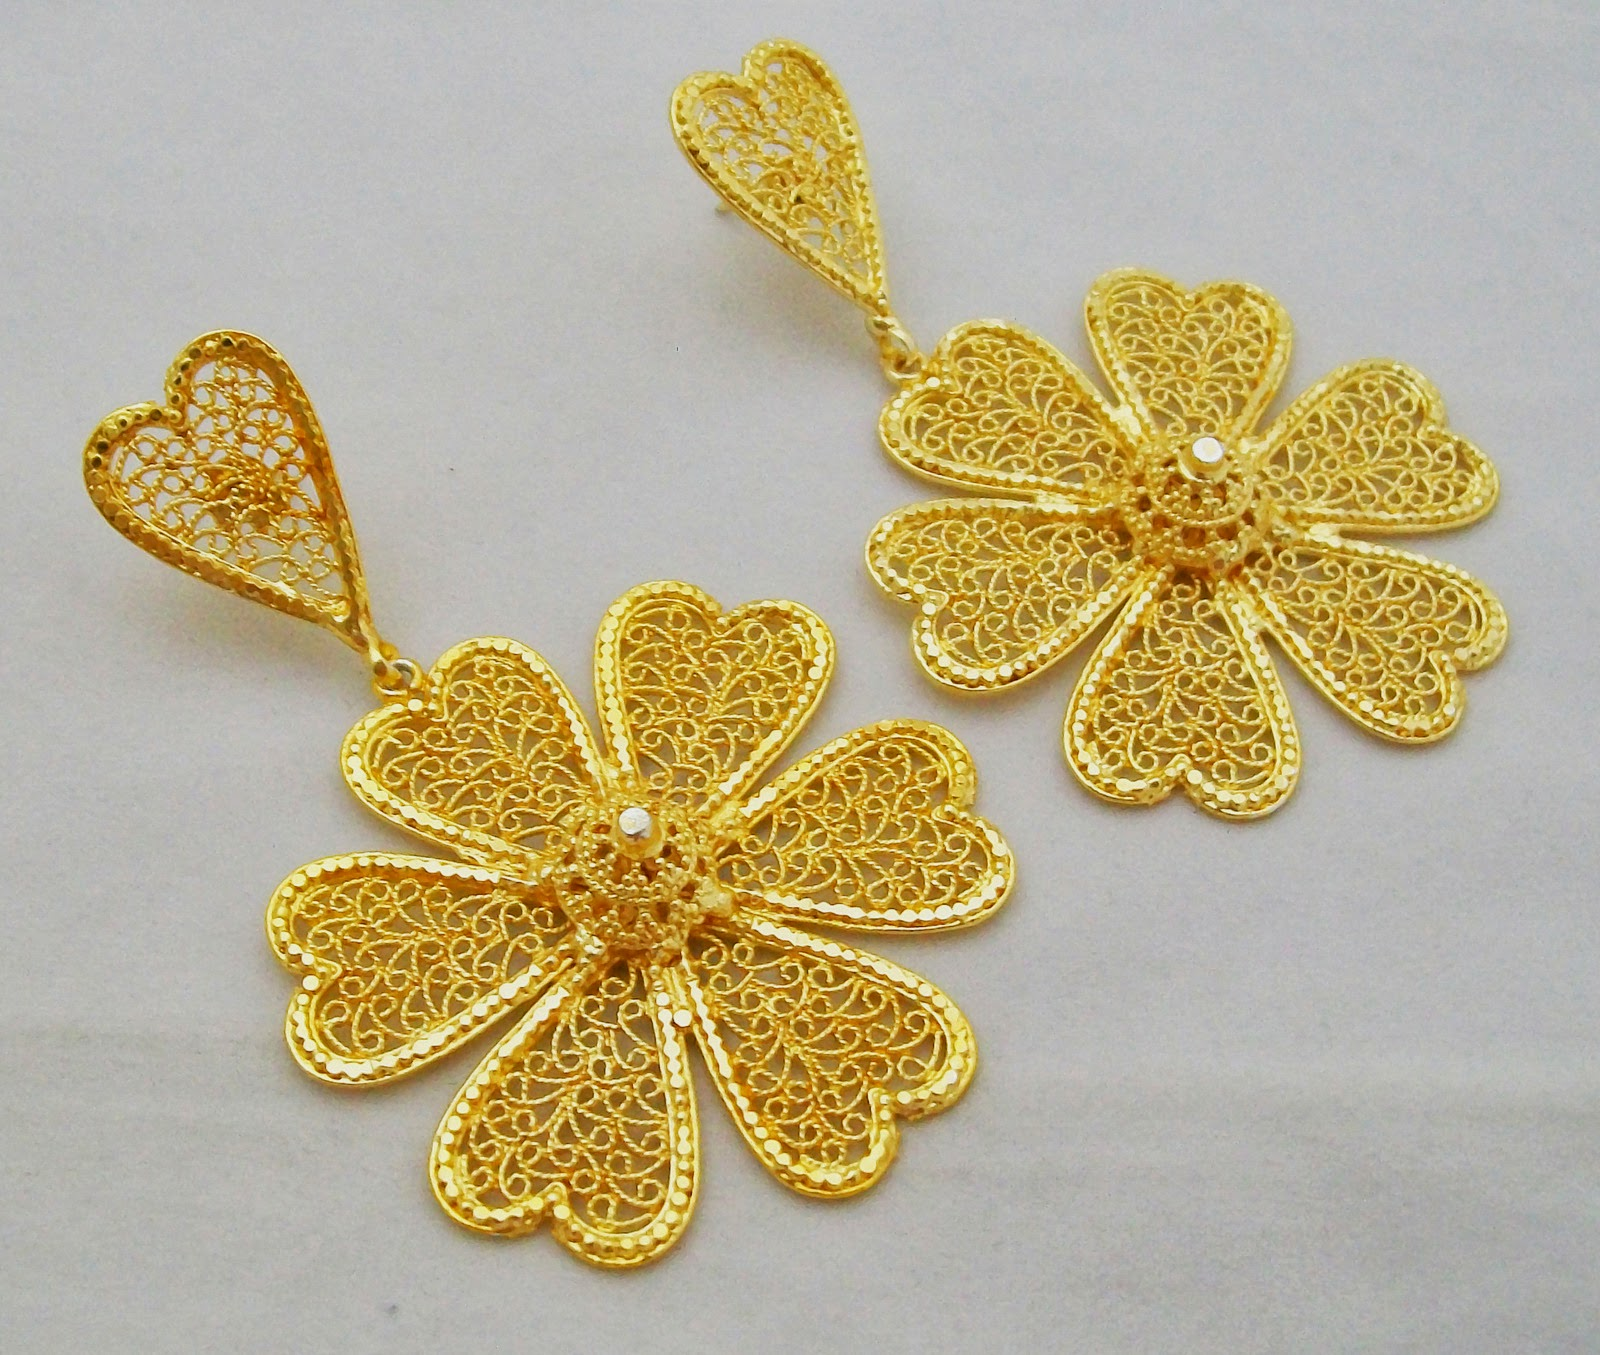 Jewellery India Online Shop: Indian Gold Plated Earrings